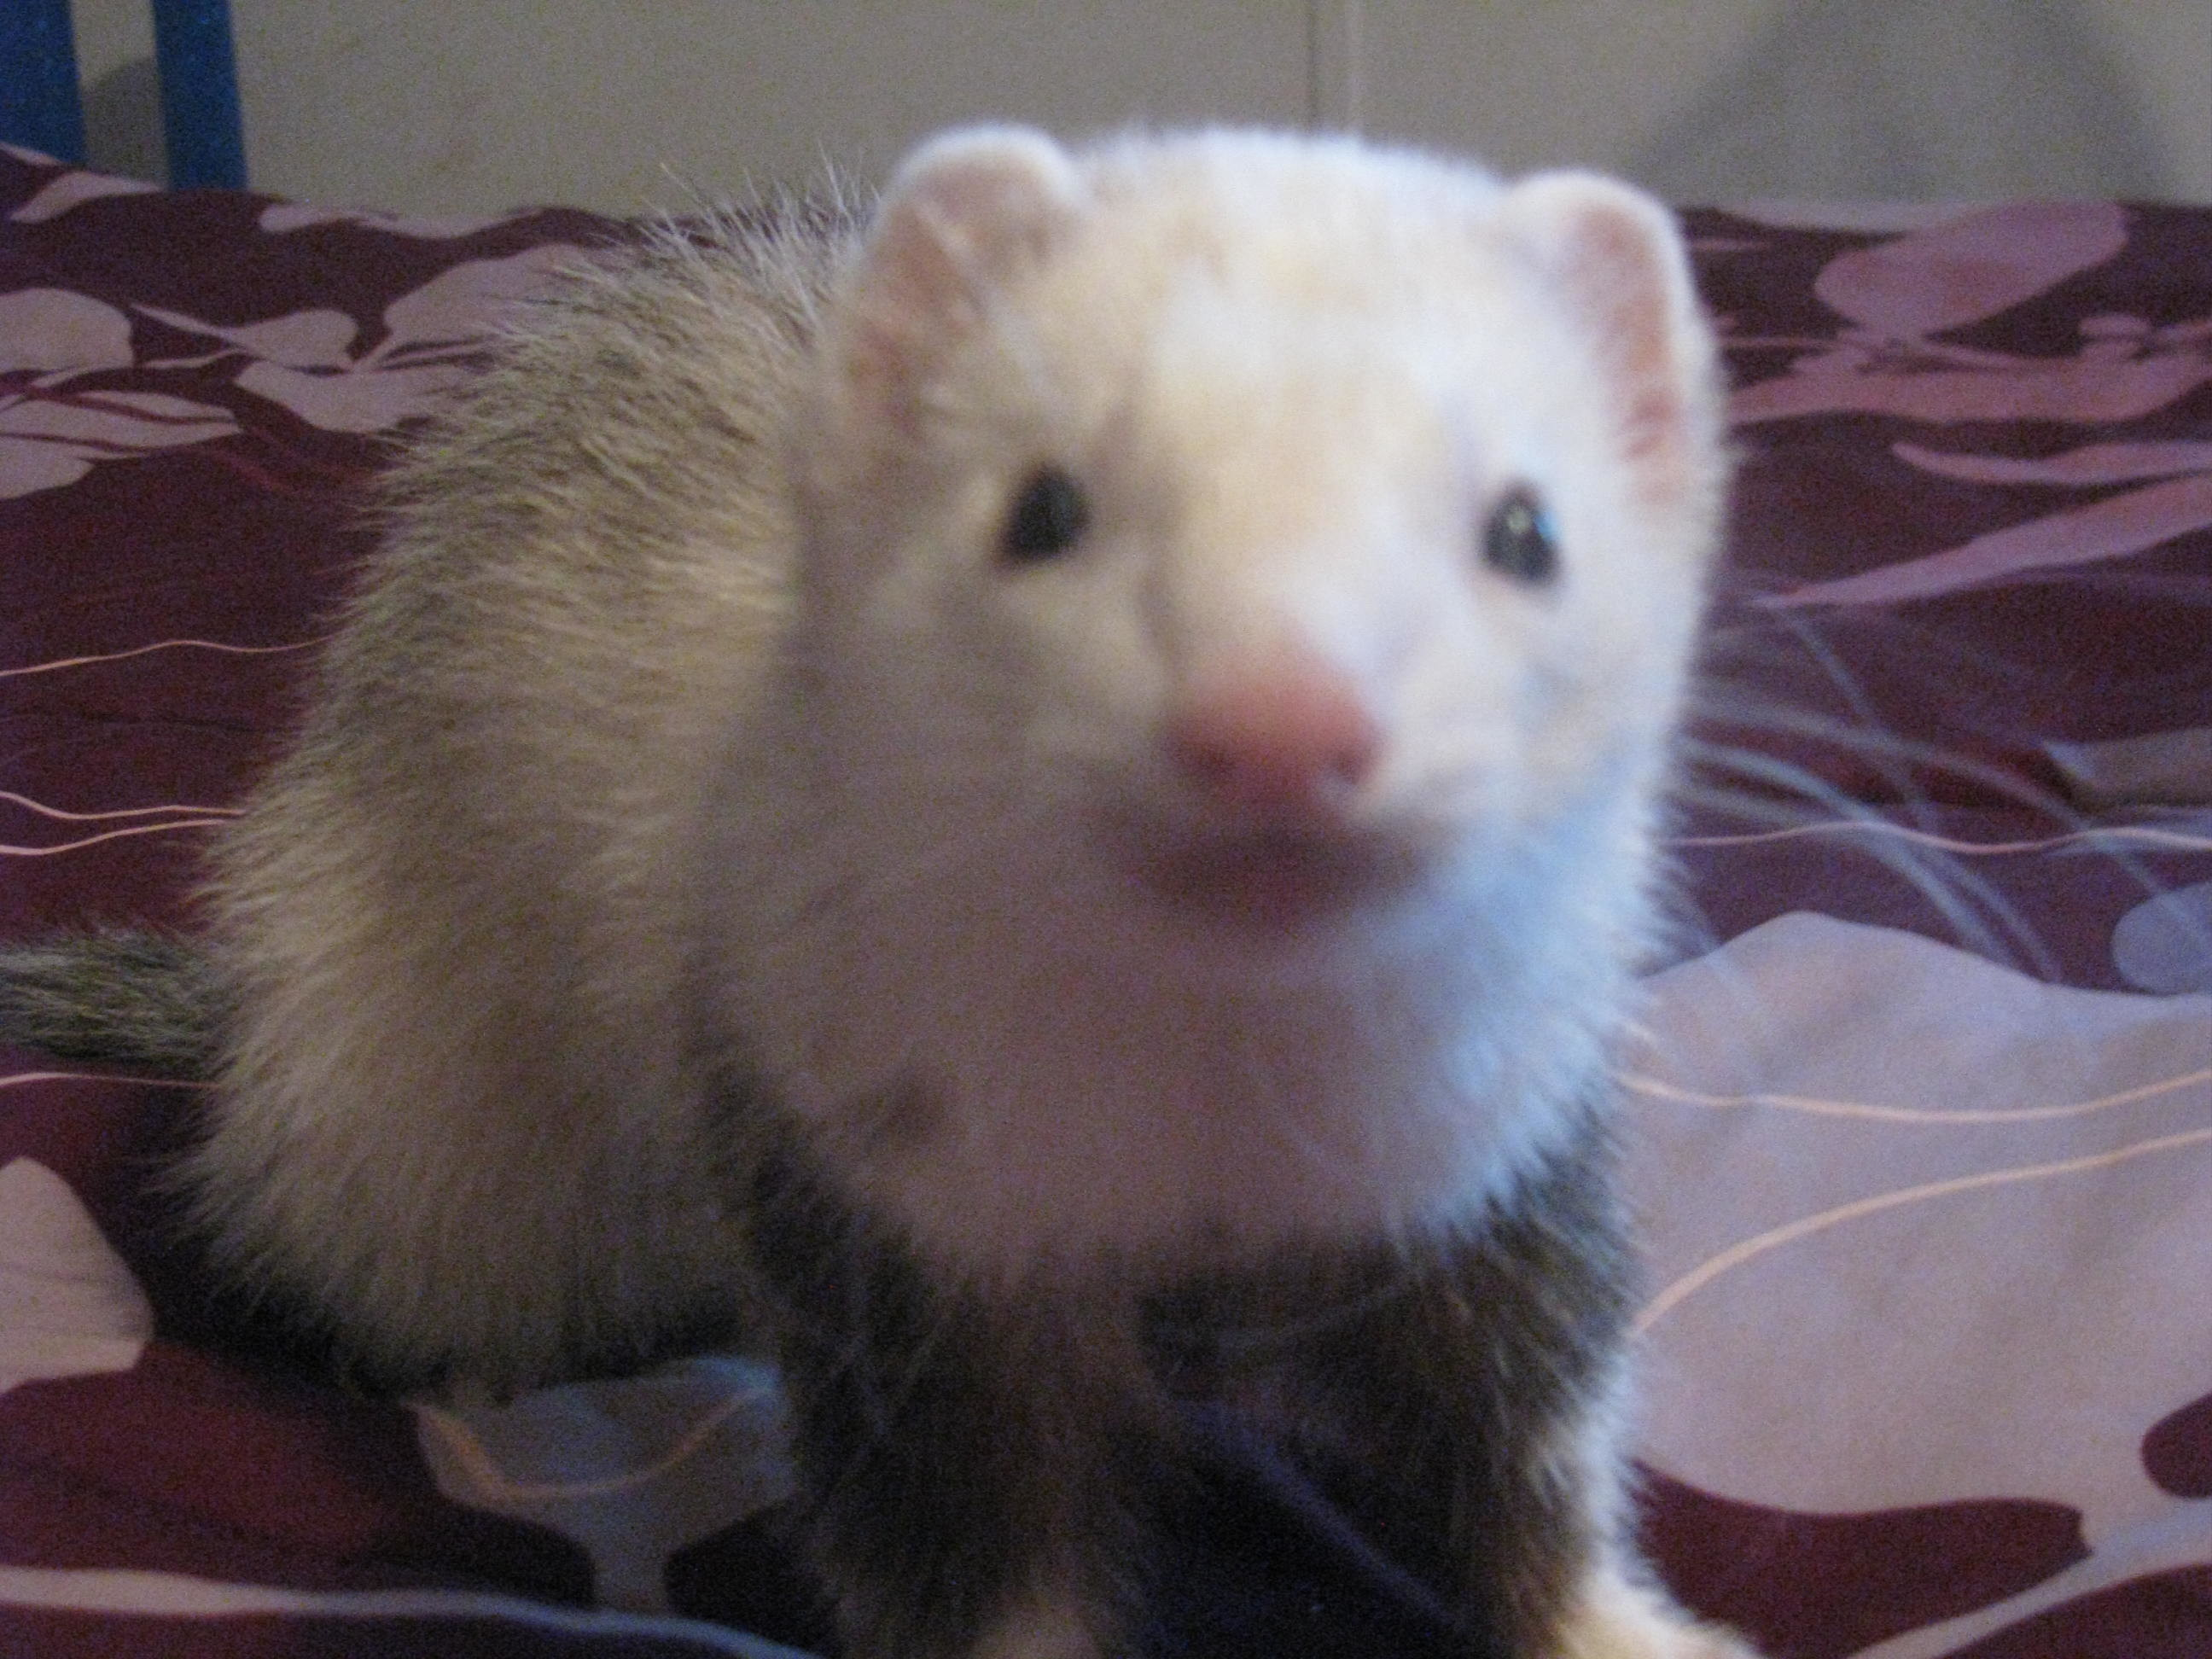 Res: 2592x1944, Albino Ferret Babies - Other &- Animals Background Wallpapers on .